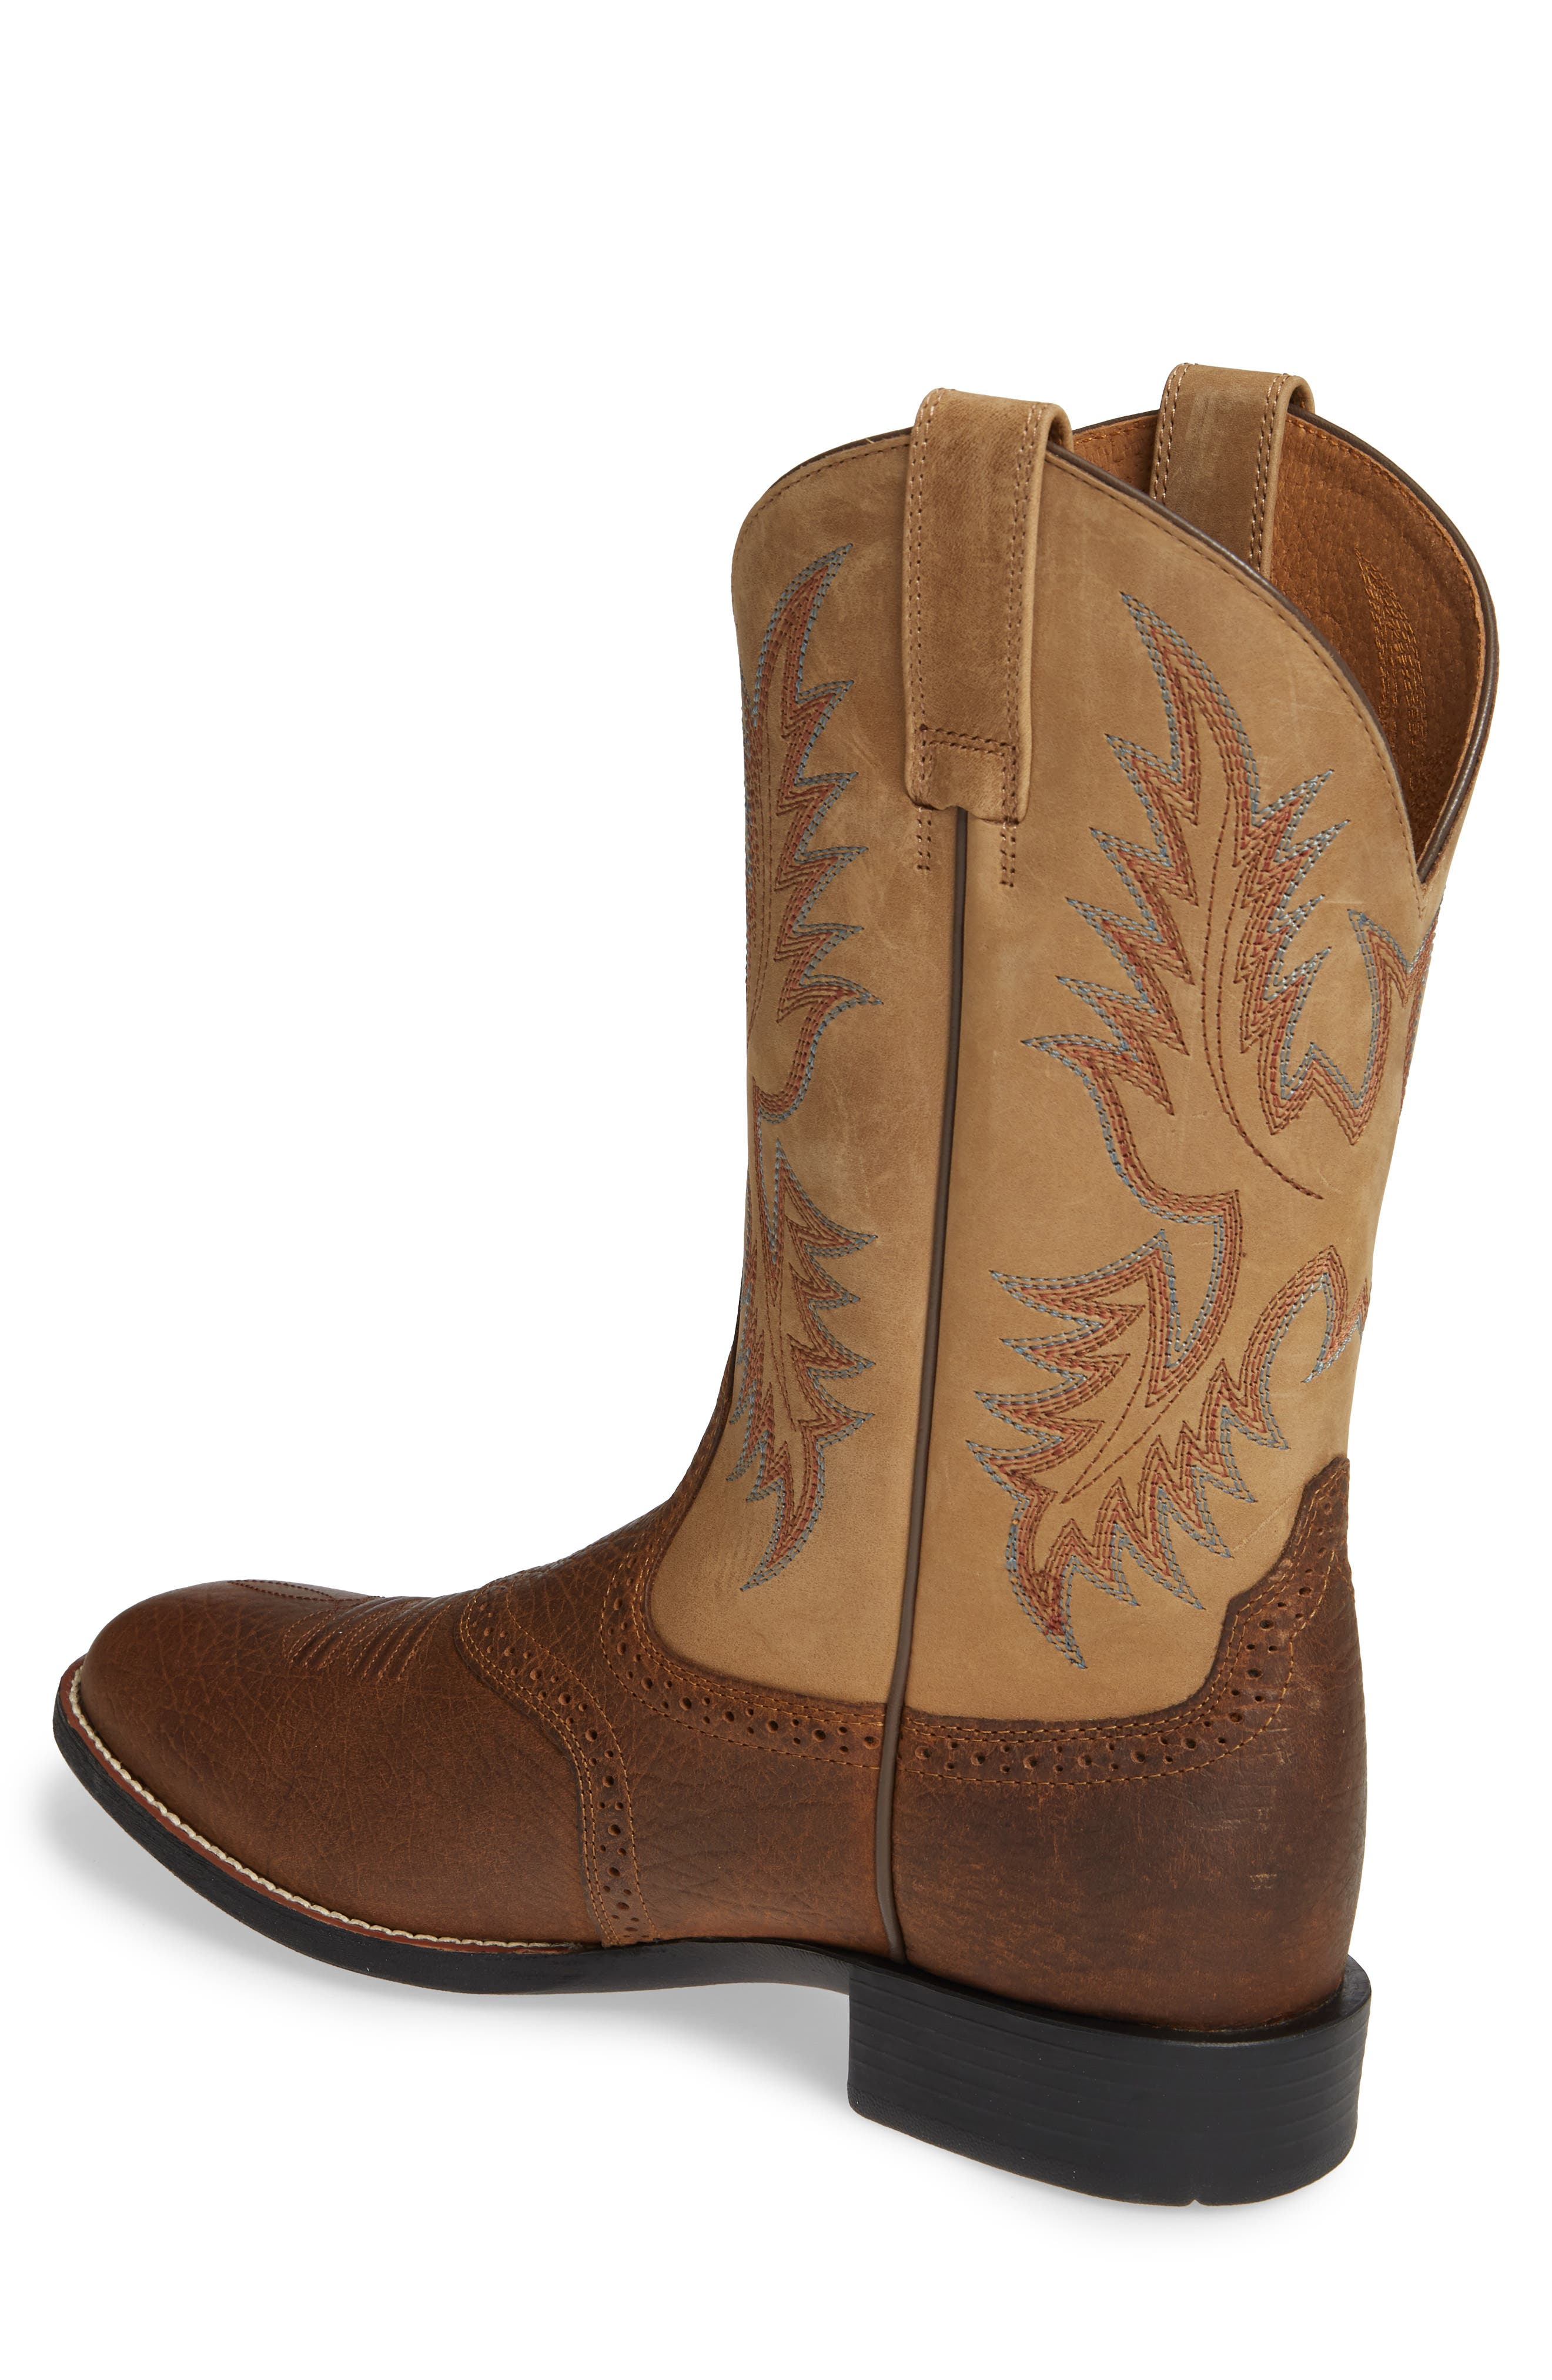 ARIAT, Heritage Stockman Cowboy Boot, Alternate thumbnail 2, color, BROWN/ BEIGE LEATHER